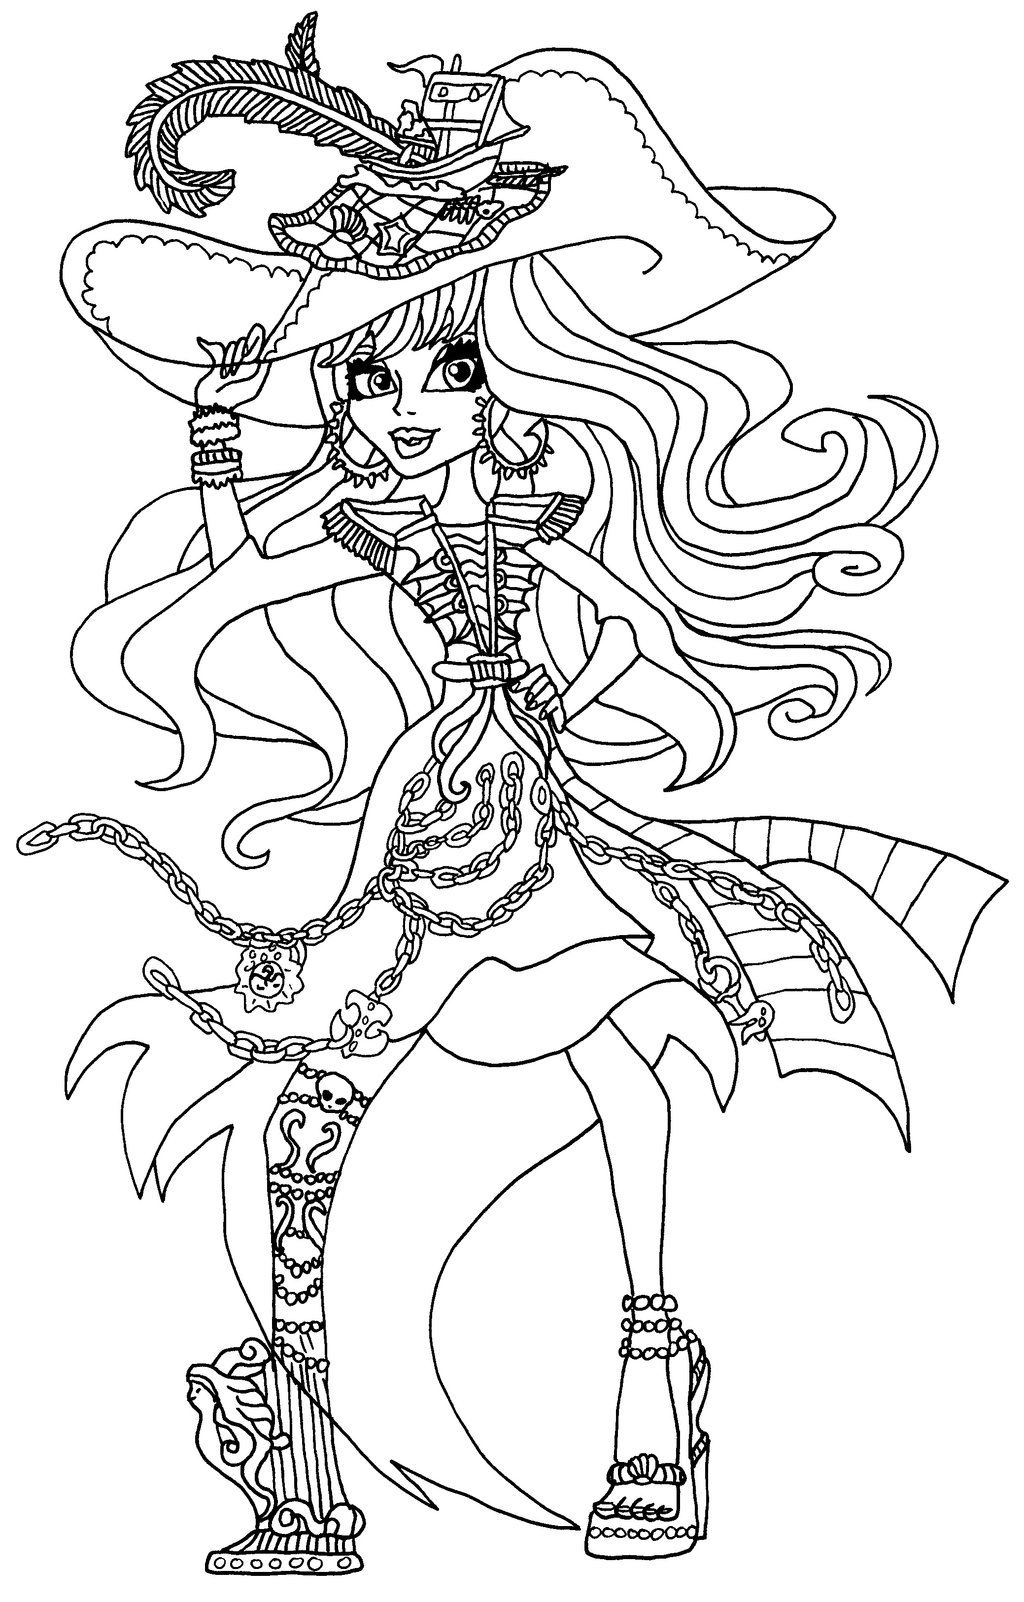 A Coloring Page Of Vandala Doubloons New Character From Monster High Haunted